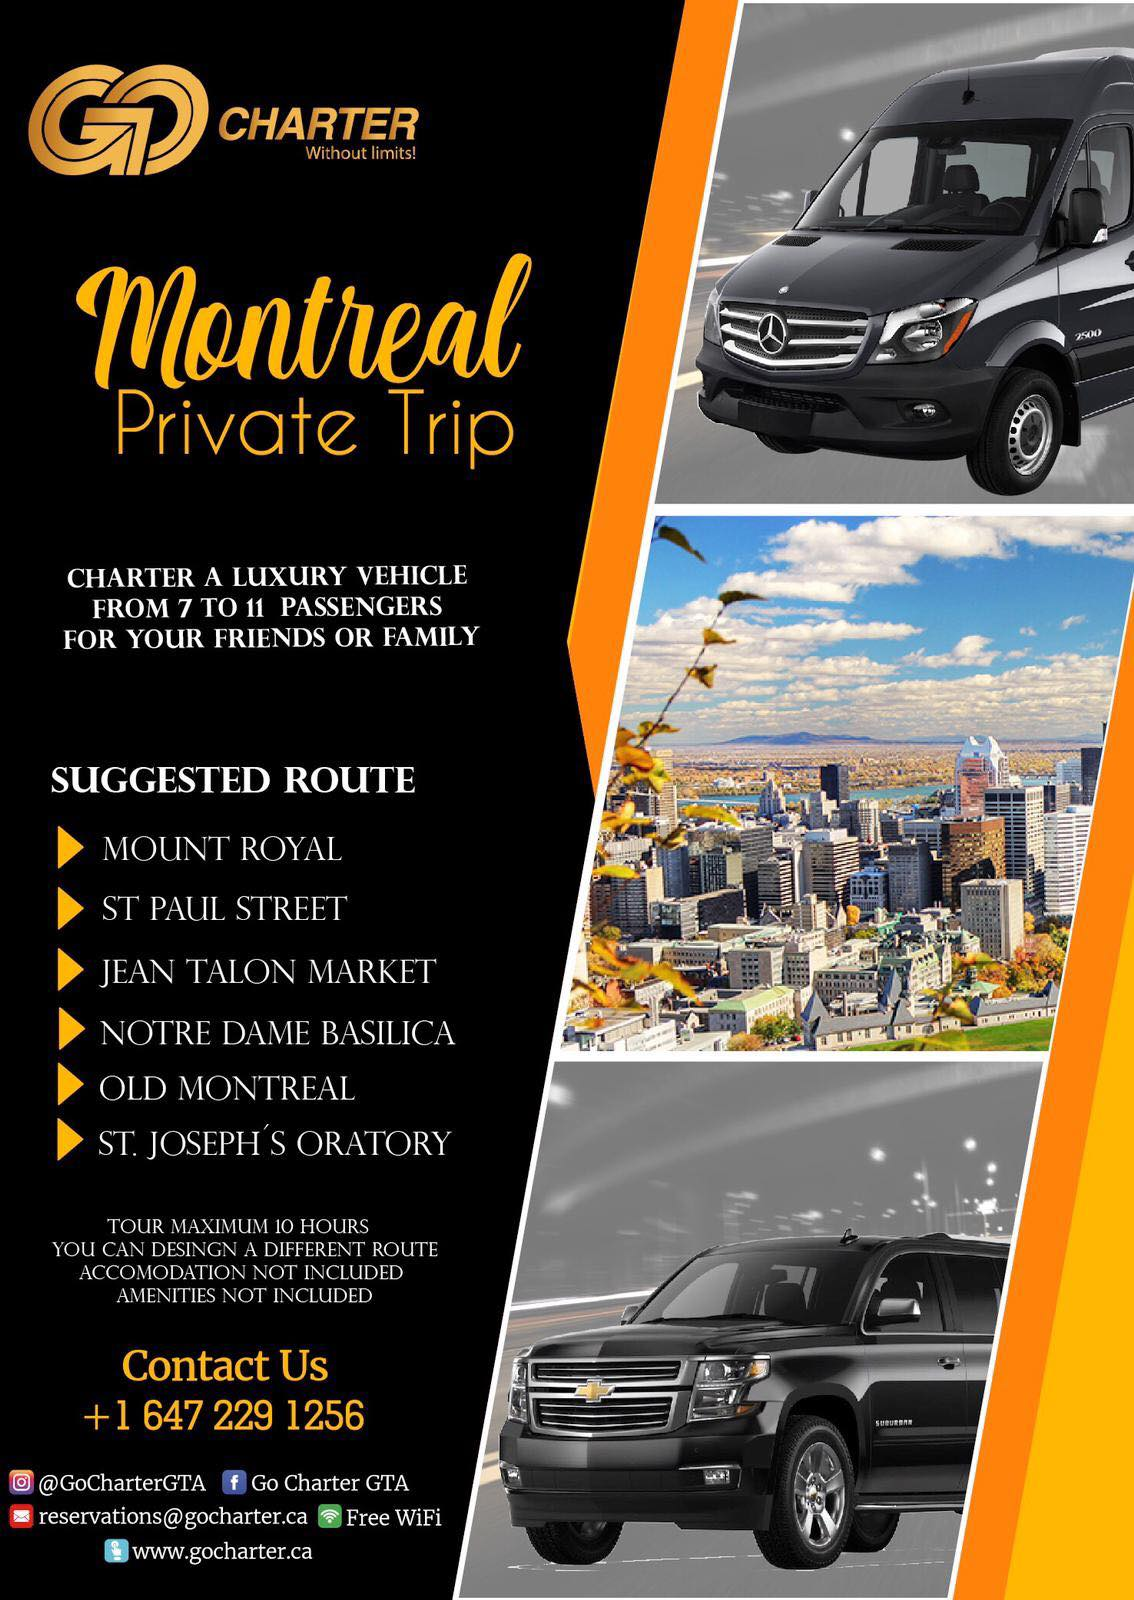 MONTREAL PRIVATE TRIP